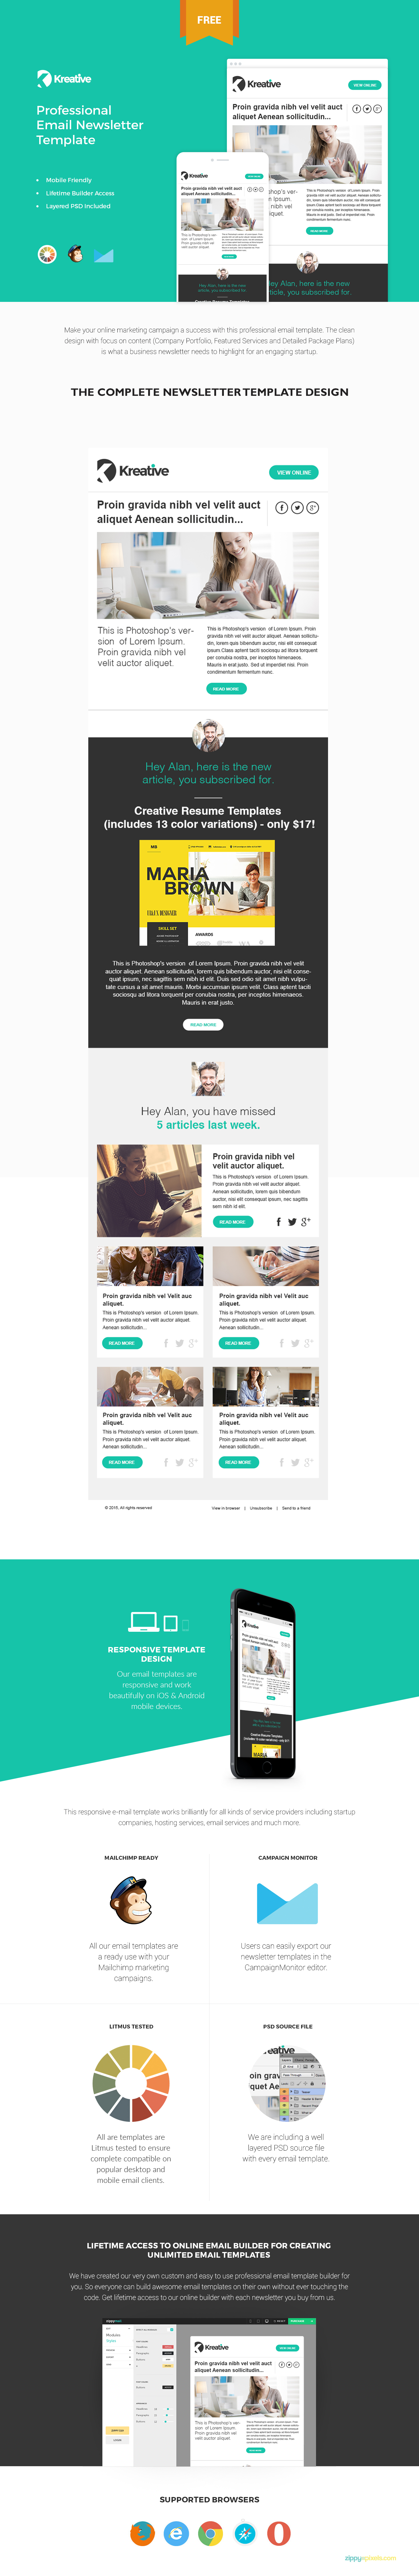 click here to download this mailchimp ready free email newsletter template - Free Email Newsletter Templates